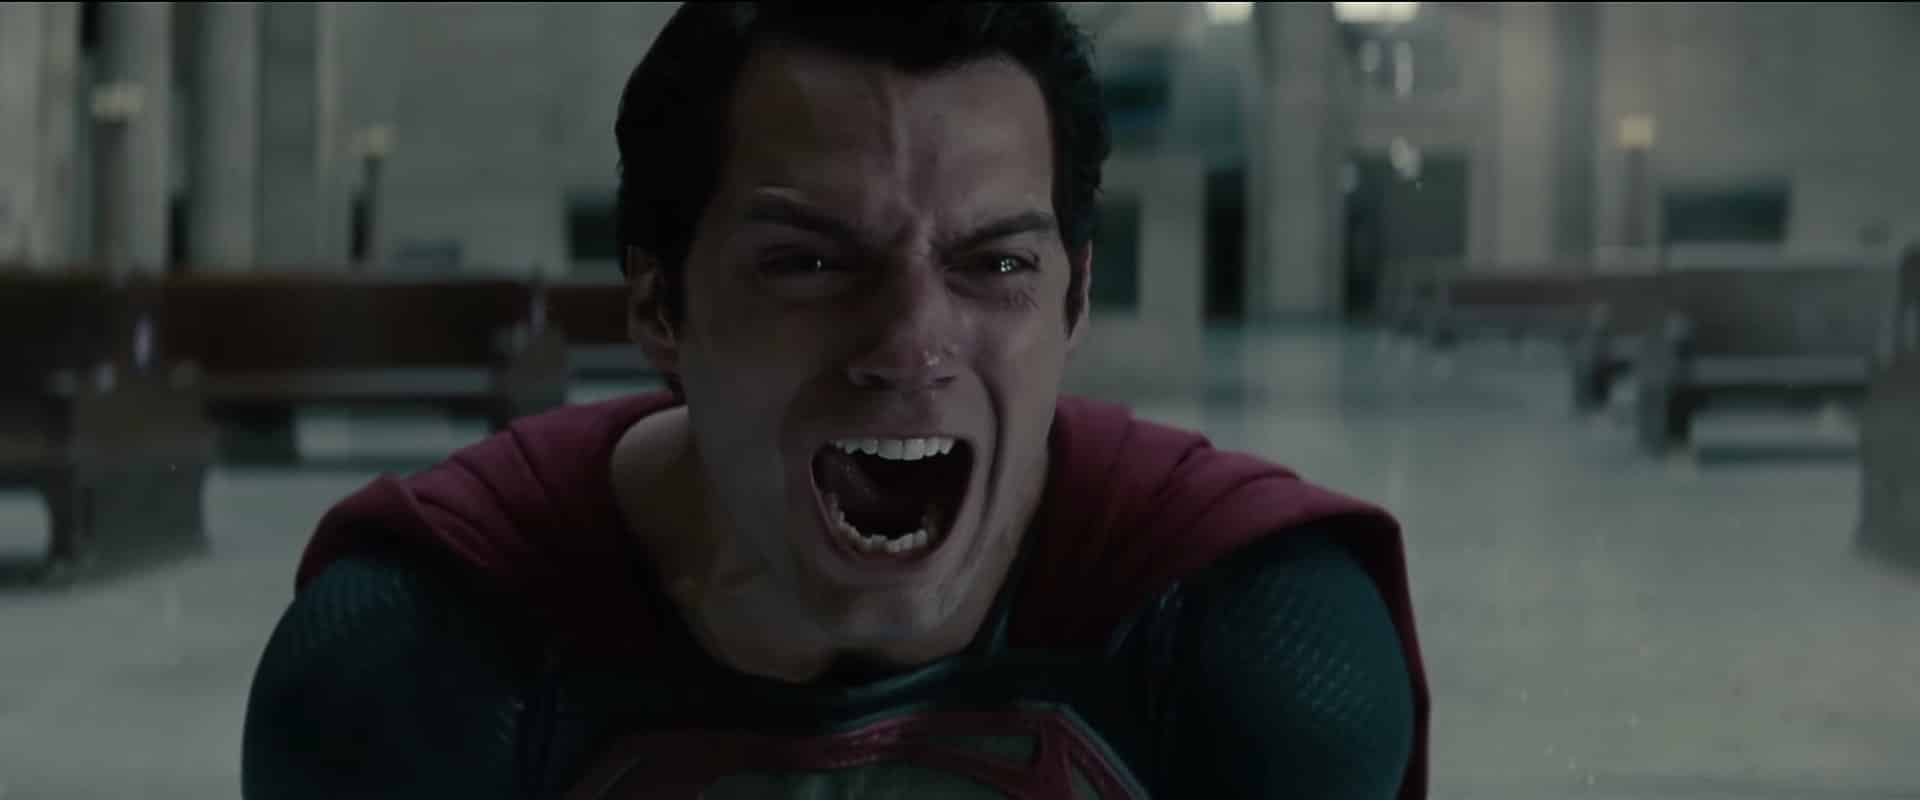 Superman yelling in Man of Steel Warner Bros. WarnerMedia DCEU DC Extended Universe plan: retain Superman, Batman, Wonder Woman, and others, but with a new Flashpoint multiverse with The Flash that allows standalone films.